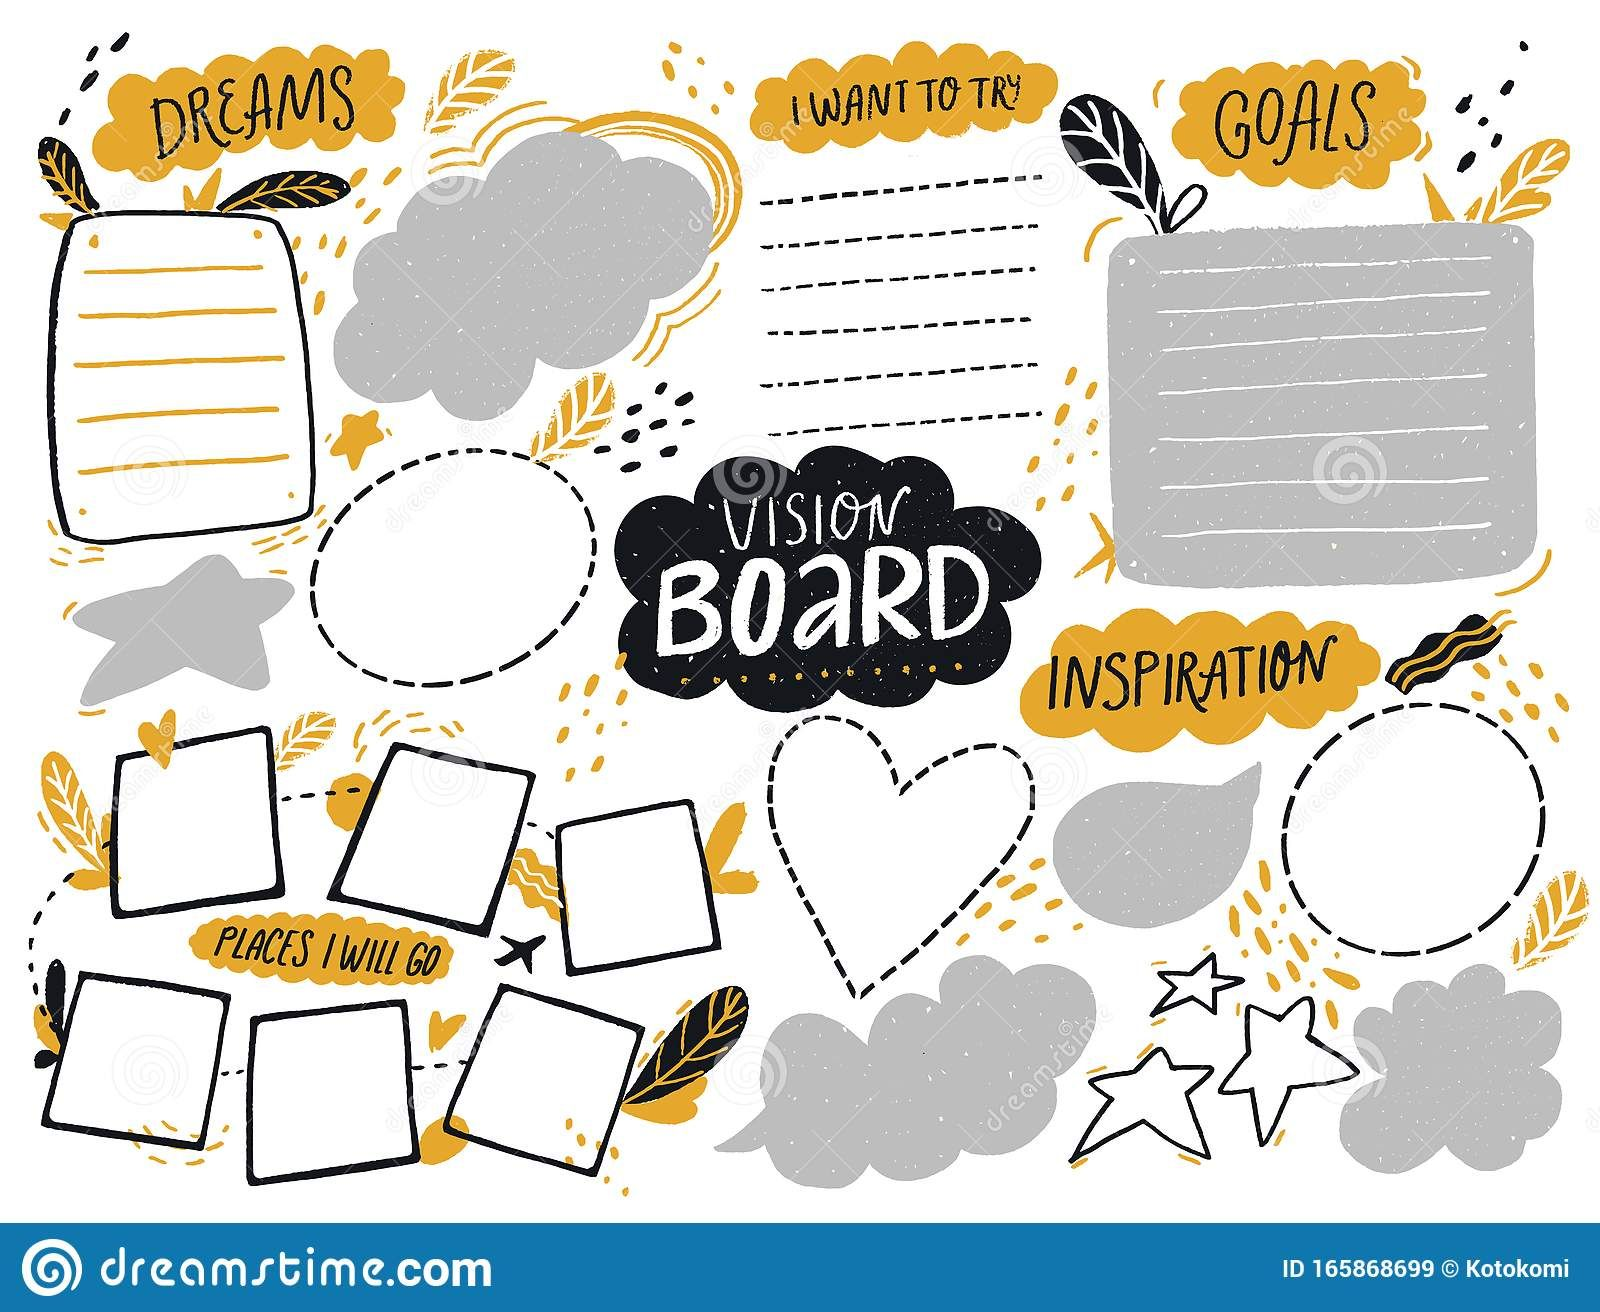 Vision Board Template With Space For Goals Dreams List Travel Plans And Inspiration Col Vision Board Template Vision Board Workshop Vision Board Inspiration